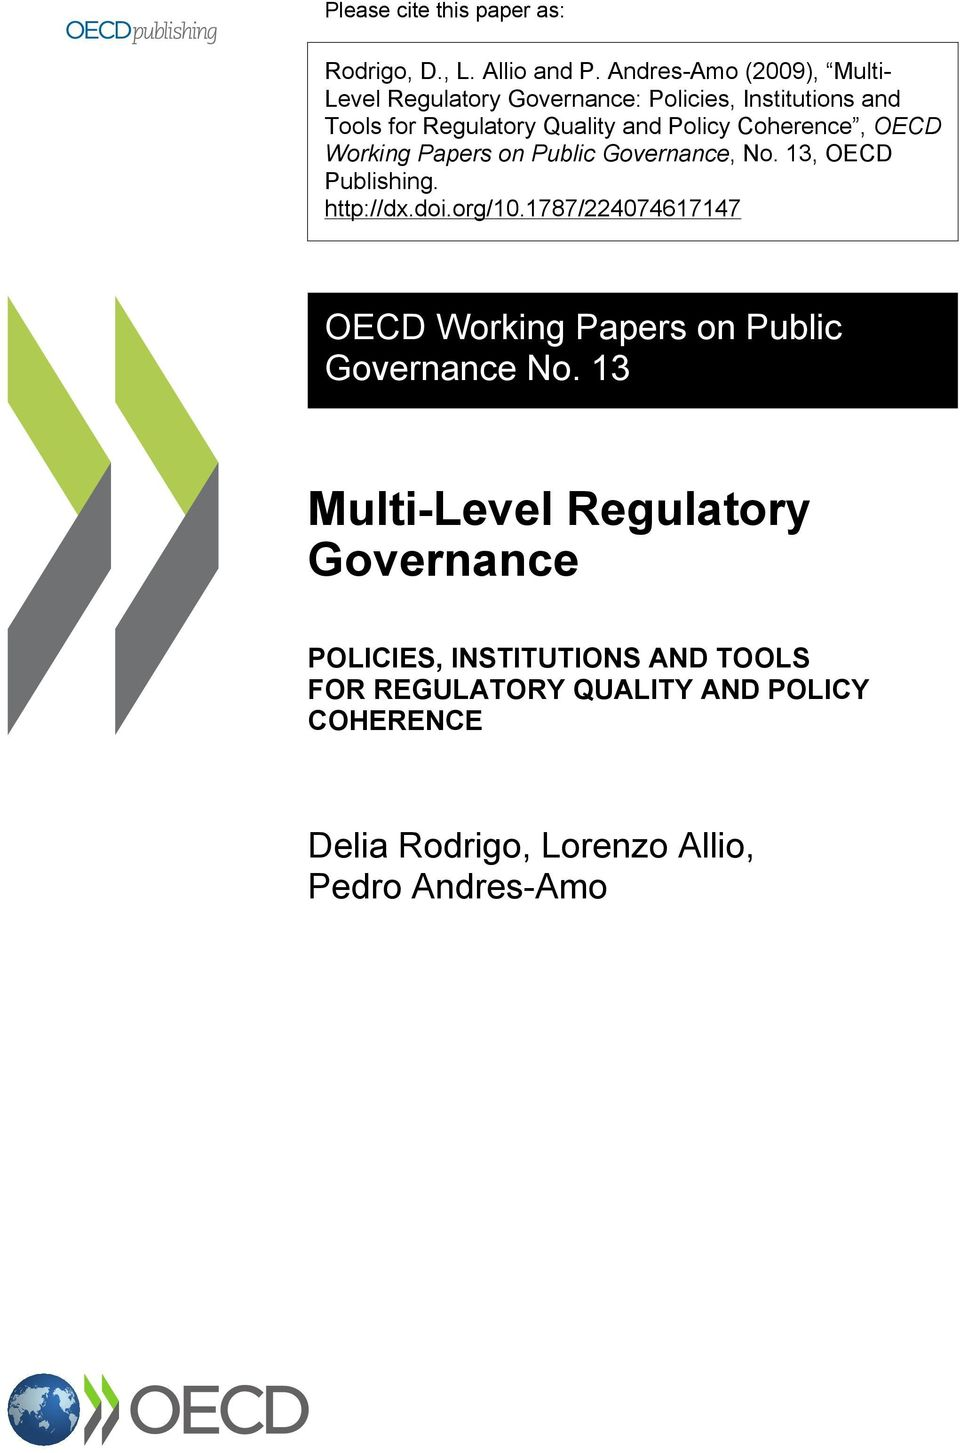 Coherence, OECD Working Papers on Public Governance, No. 13, OECD Publishing. http://dx.doi.org/10.